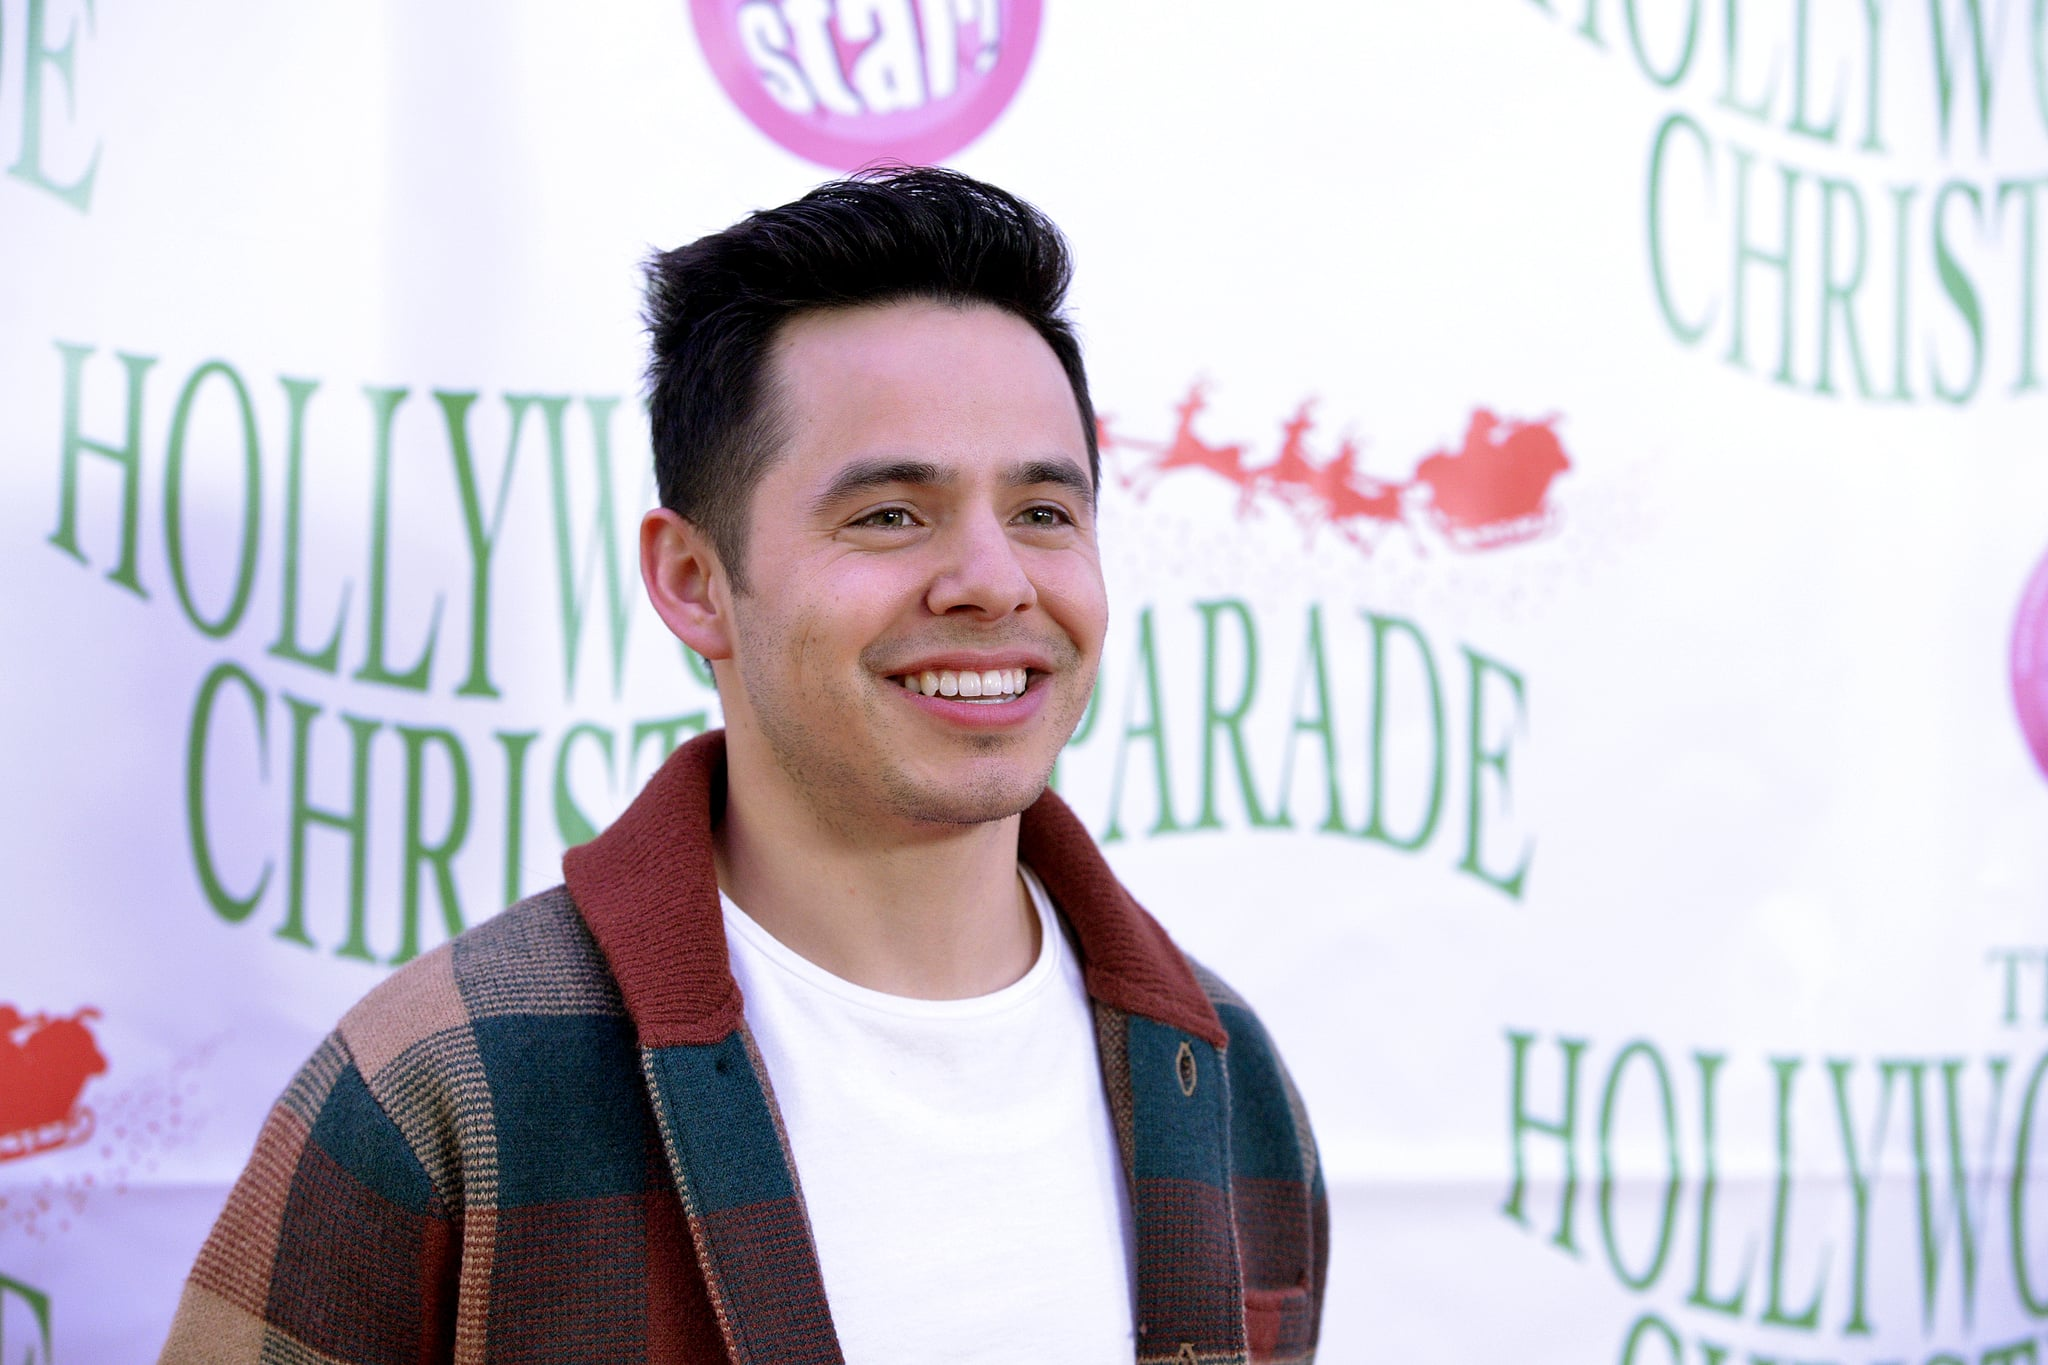 HOLLYWOOD, CALIFORNIA - DECEMBER 01: Musician David Archuleta attends the 88th annual Hollywood Christmas Parade on December 01, 2019 in Hollywood, California. (Photo by Michael Tullberg/Getty Images)